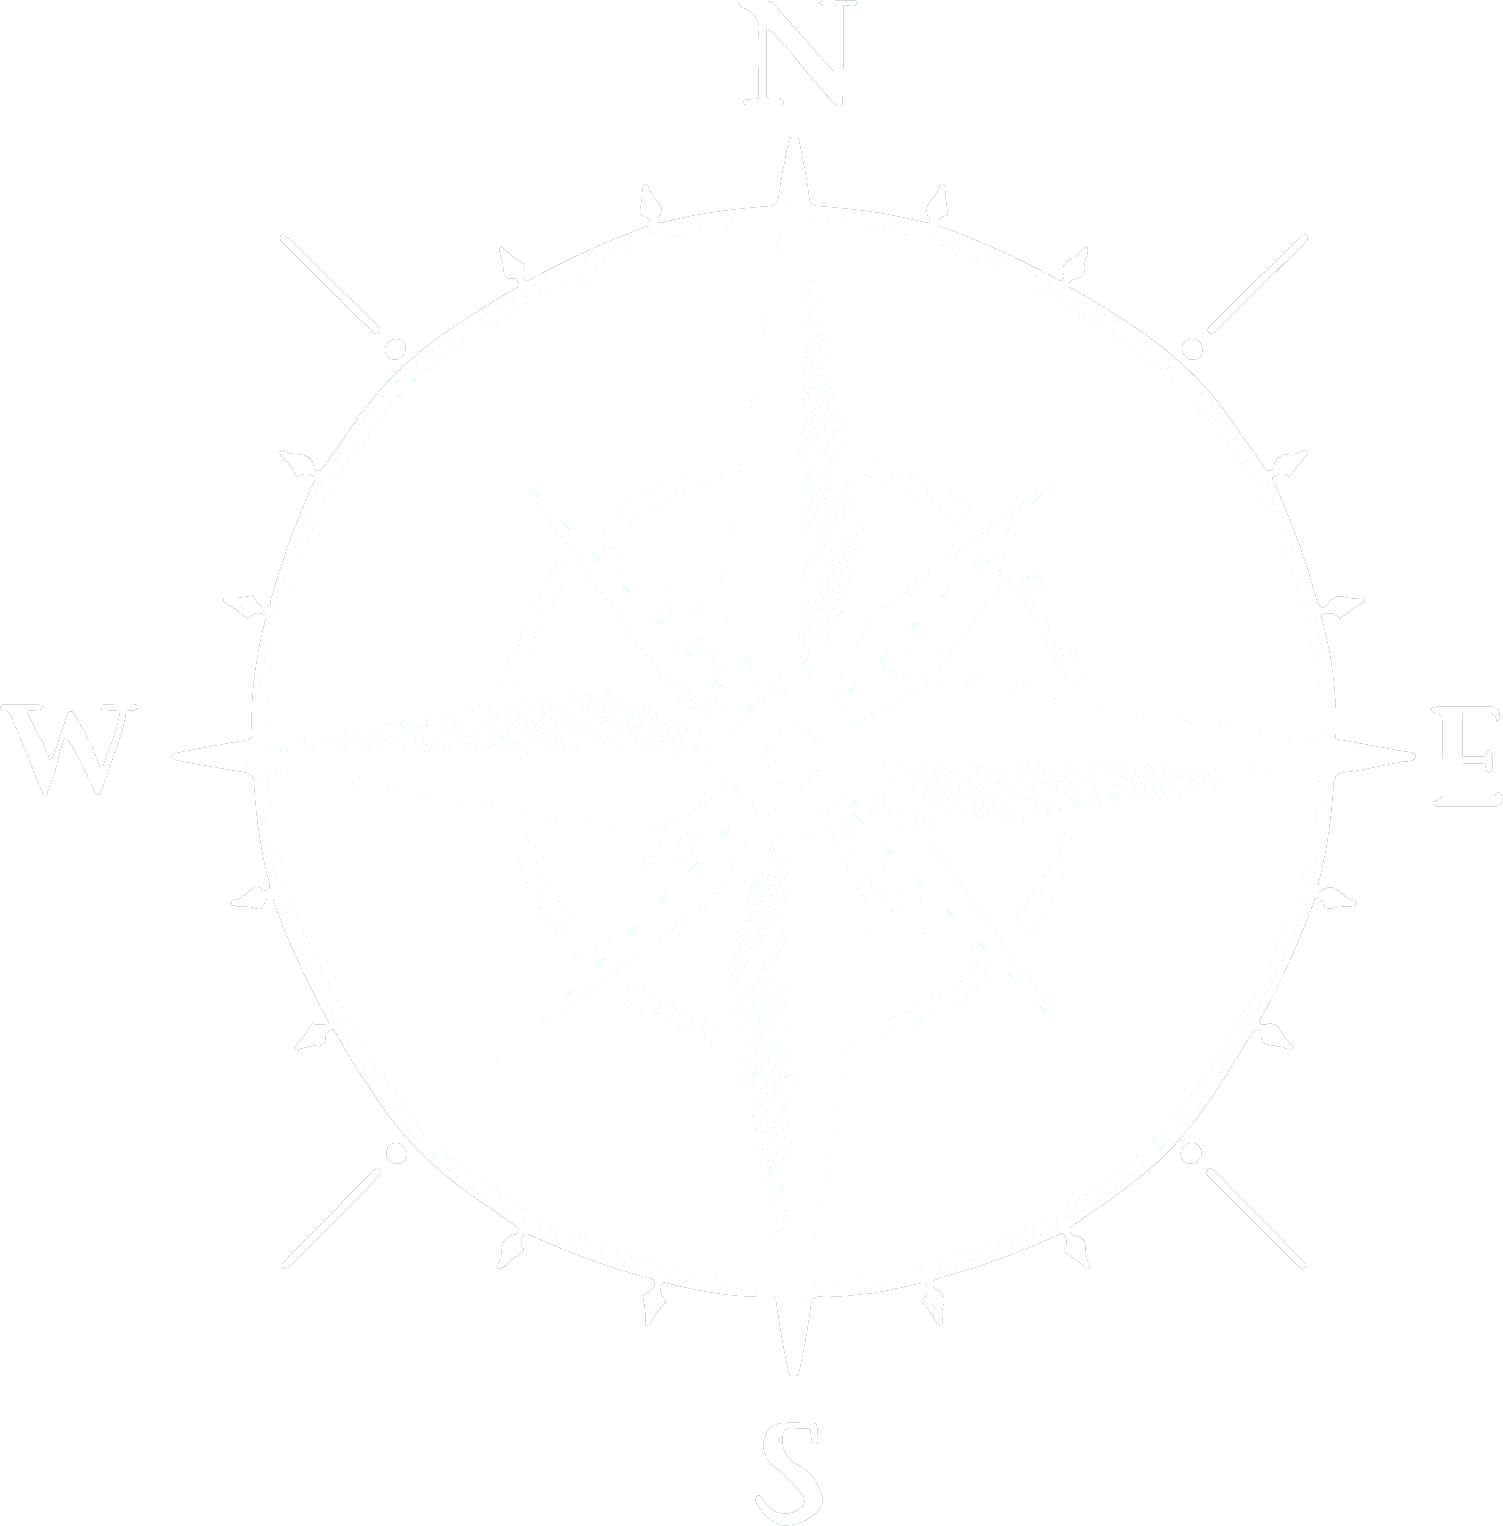 Hand-drawn-vintage-compass2weiss